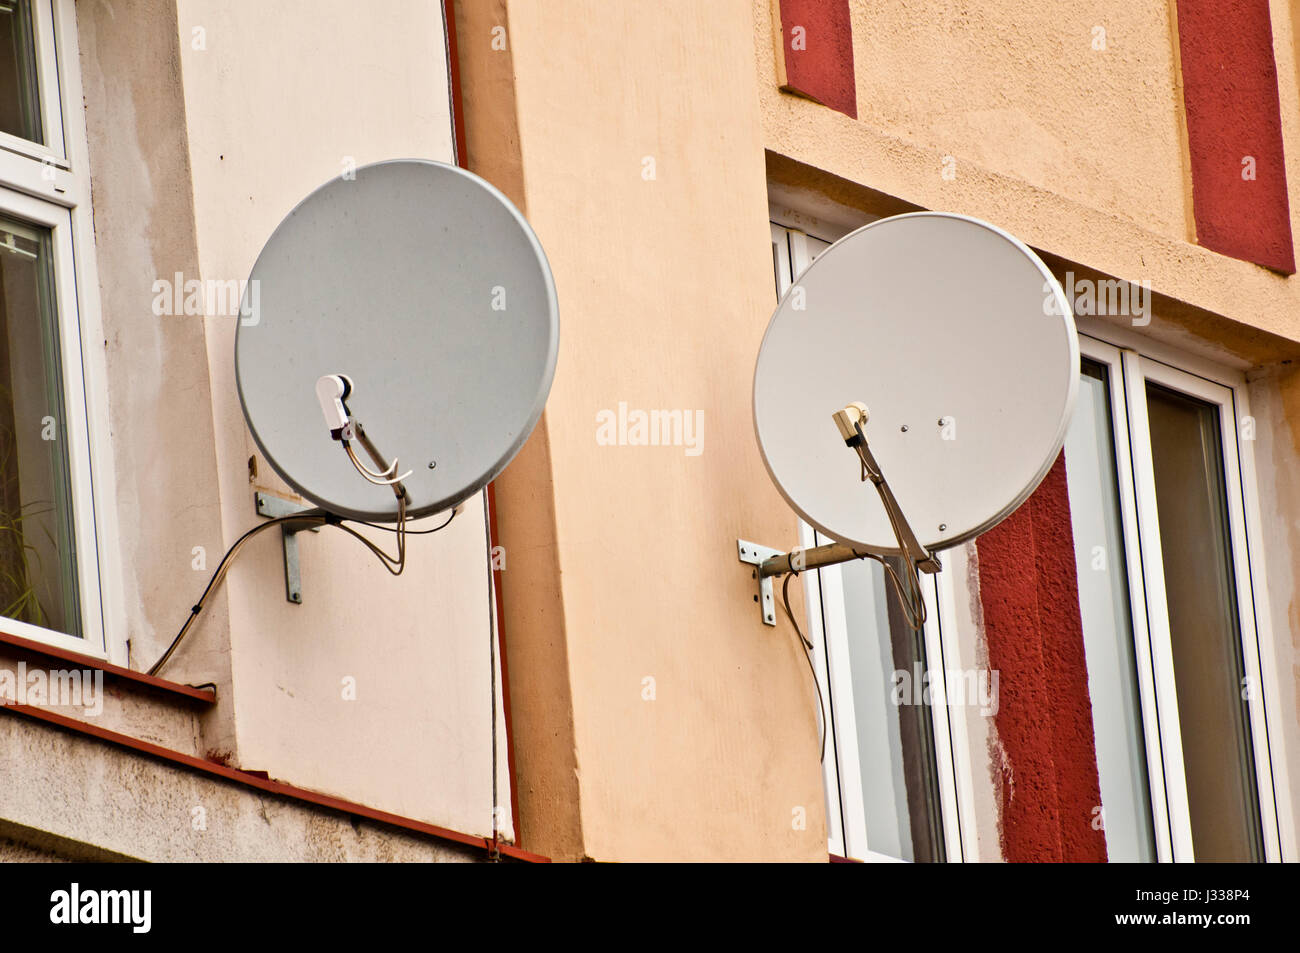 Satellite Dishes Hanging On A House External Wall Stock Photo Wiring